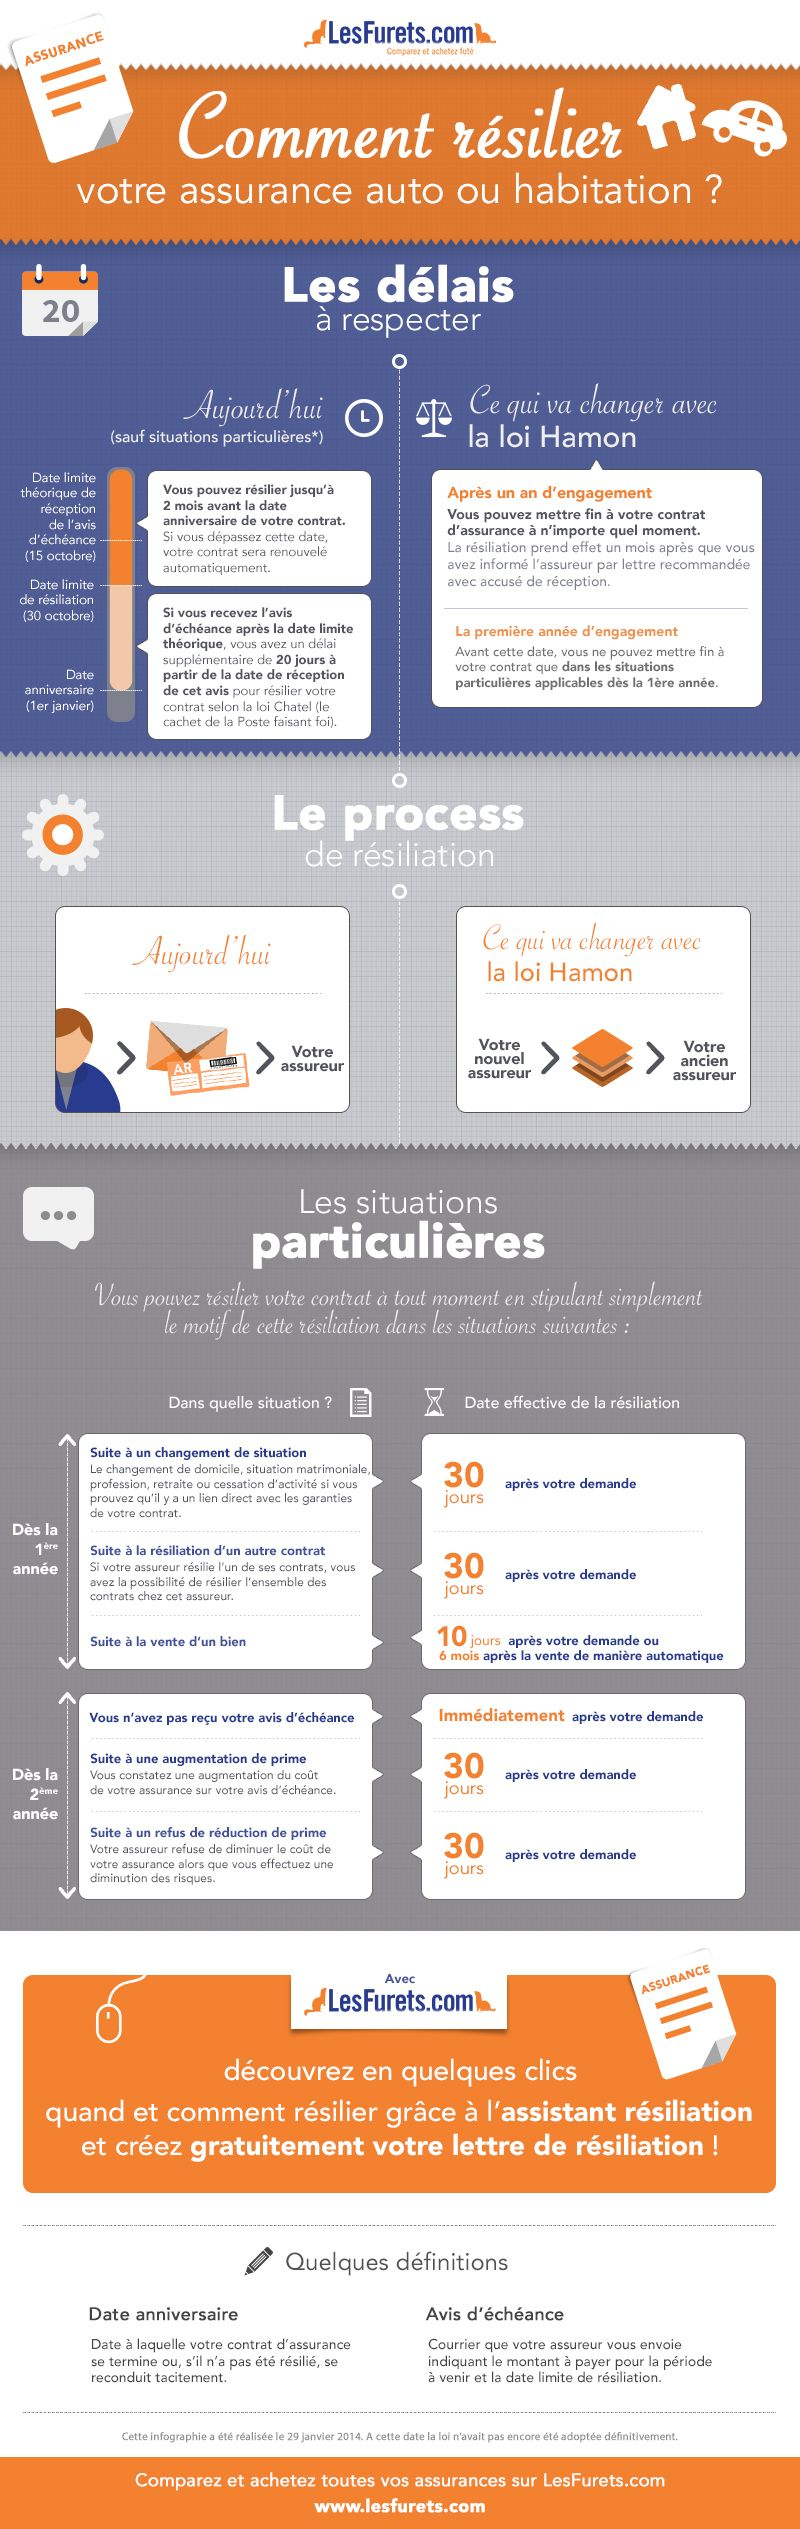 infographie sur comment r silier votre assurance auto ou. Black Bedroom Furniture Sets. Home Design Ideas